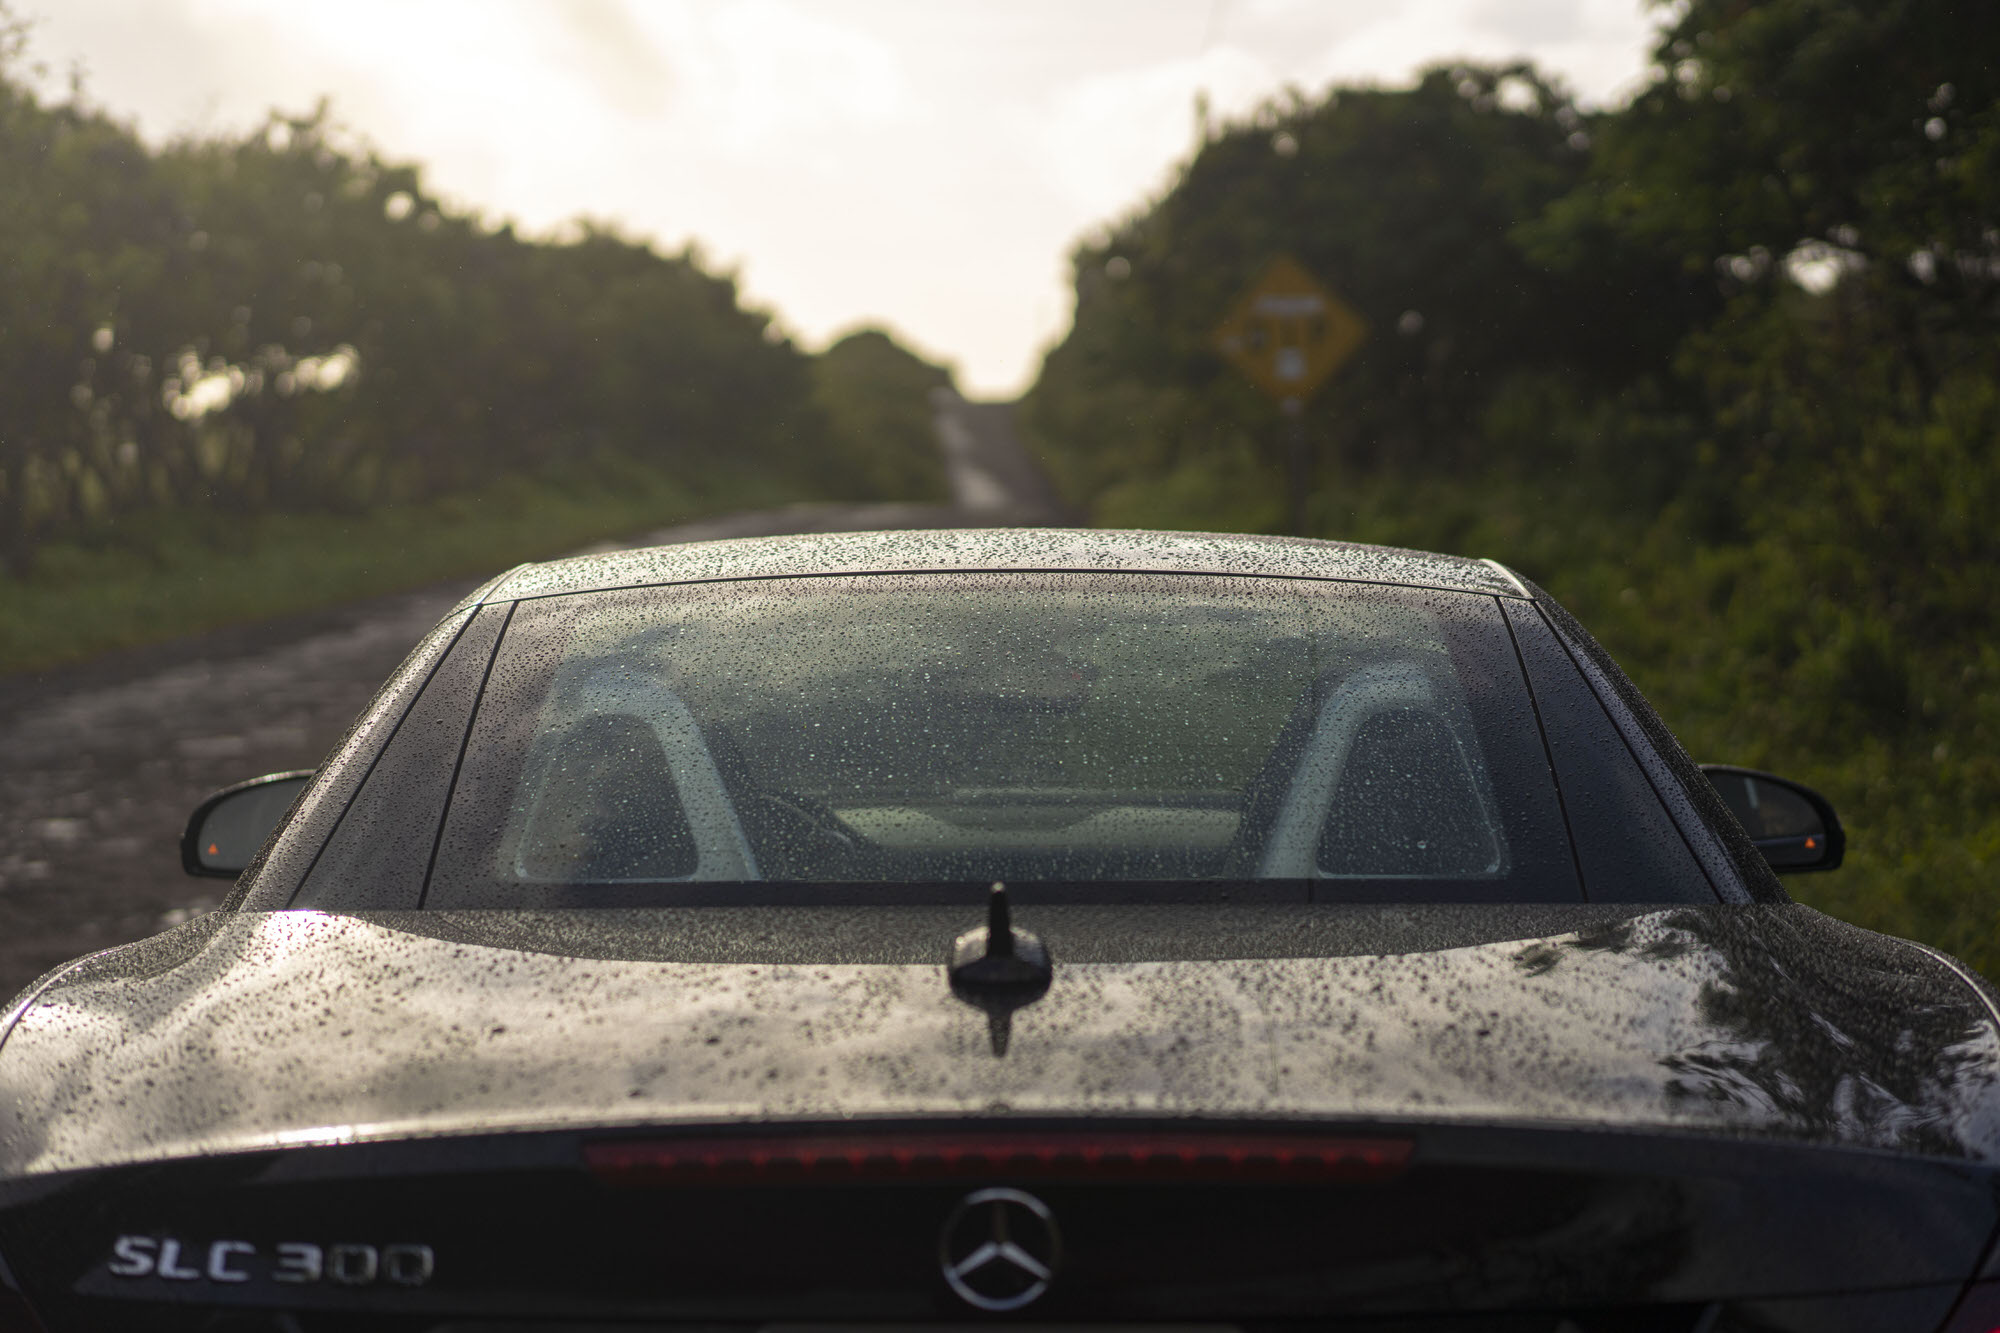 Raindrops on a black Mercedes-Benz SLC 300 in Maui, Hawaii